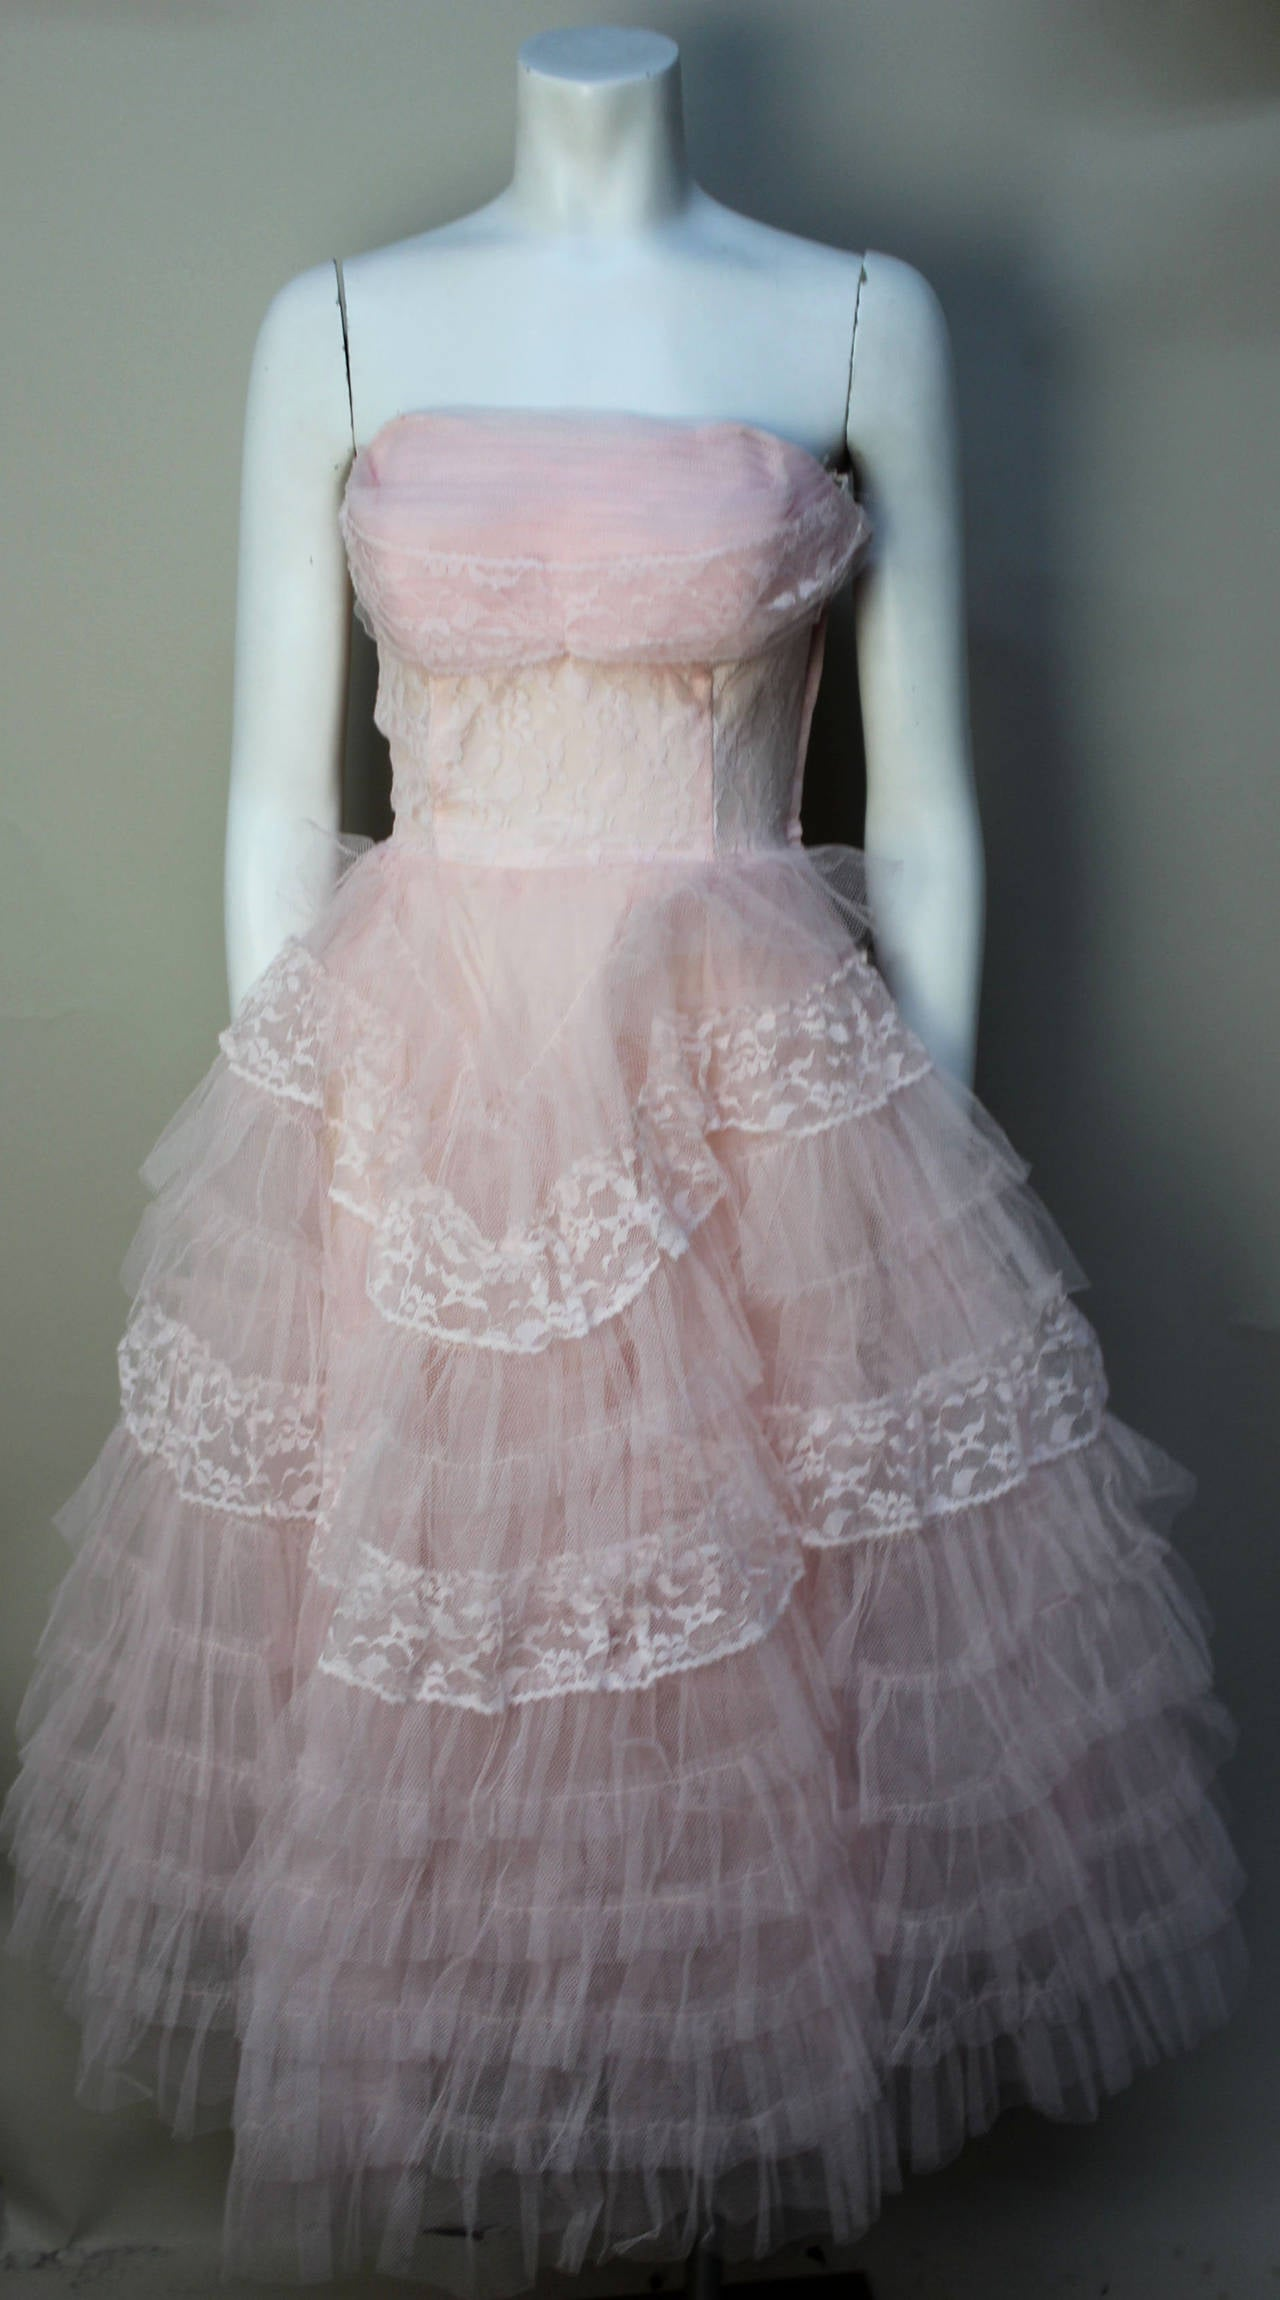 Stunning Never Worn 1950s Pink Tulle Evening Dress with Lace Bolero 3